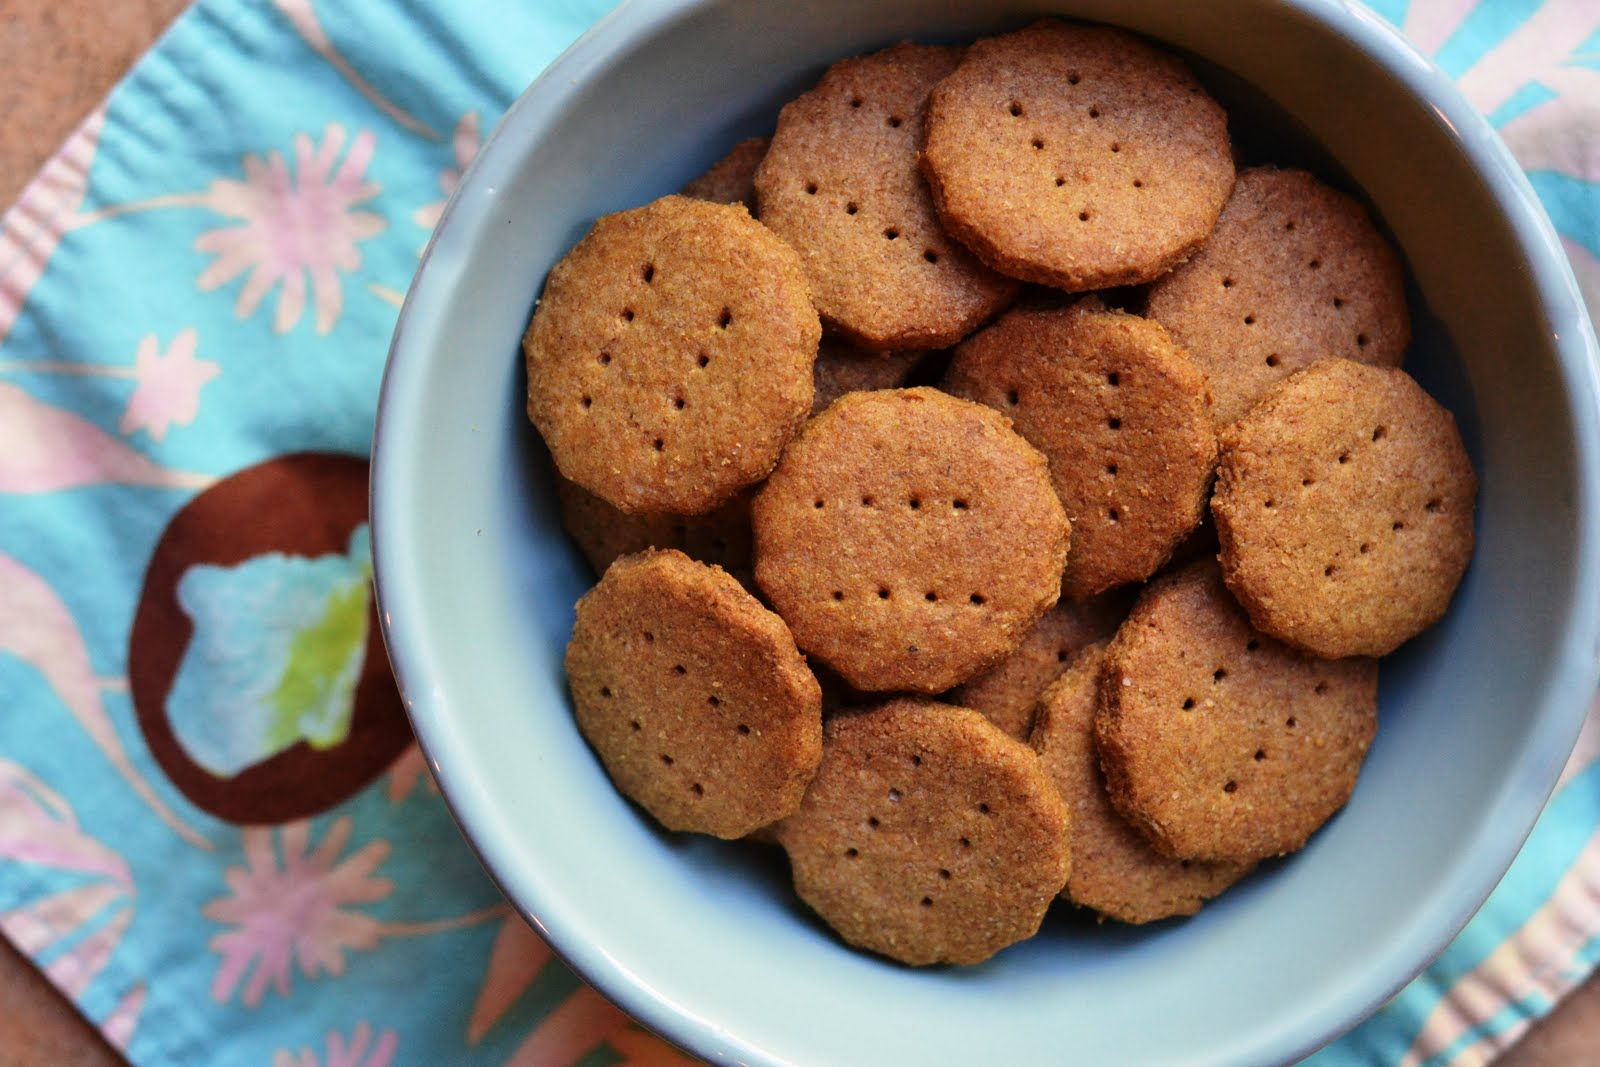 Cara's Cravings » Sugar Free Cinnamon Graham Crackers